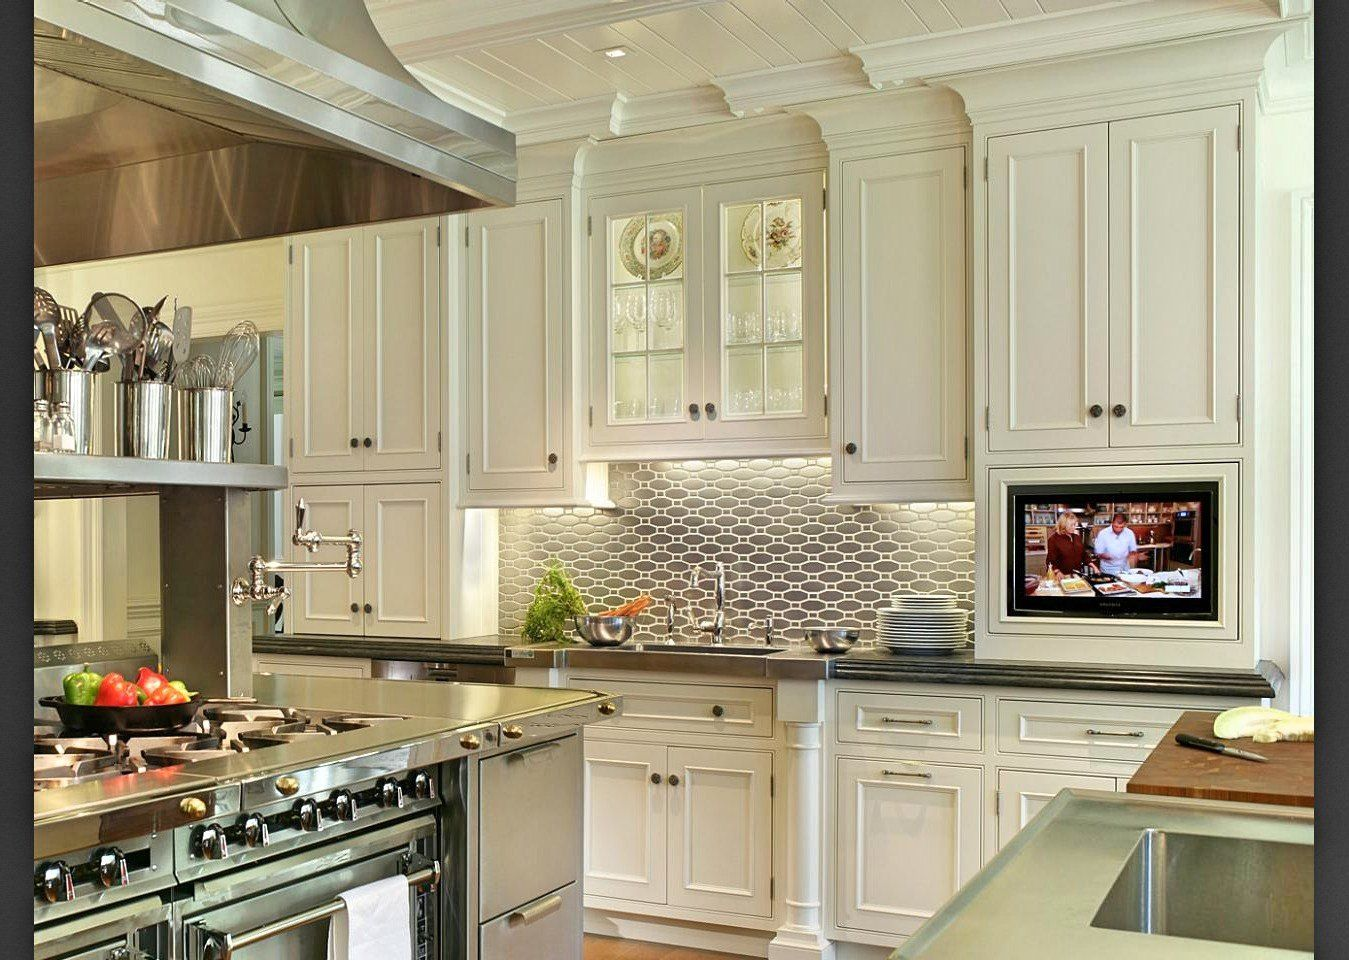 Tall Kitchen Cabinets Home Depot - Tall Kitchen Cabinet ...